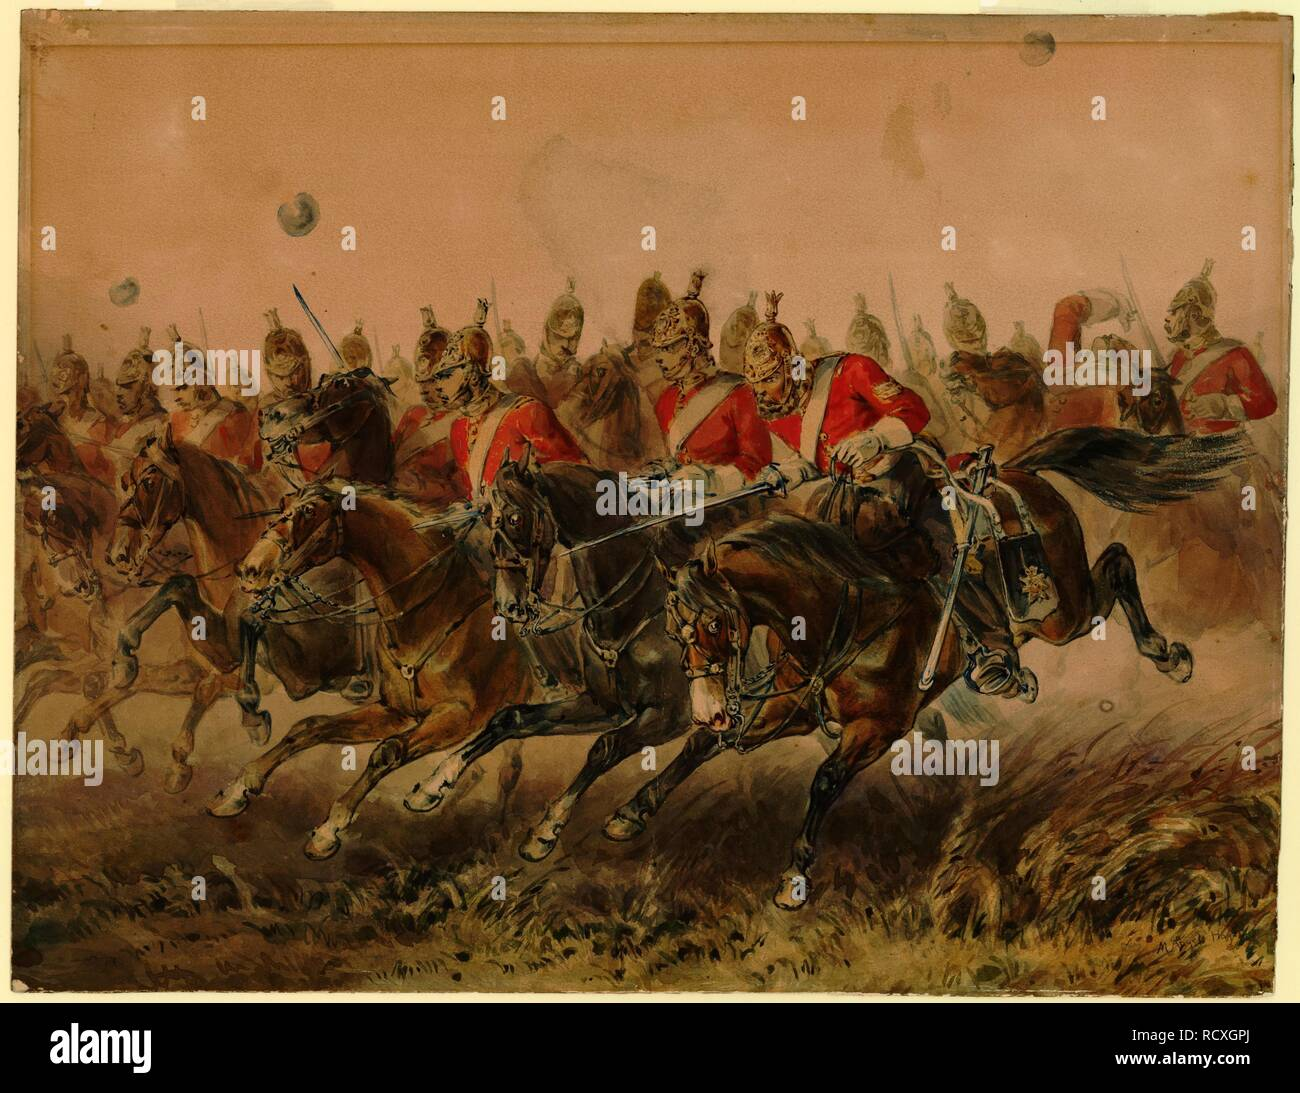 The Charge of the Light Brigade during the Battle of Balaclava. Museum: PRIVATE COLLECTION. Author: HAYES, MICHAEL ANGELO. - Stock Image